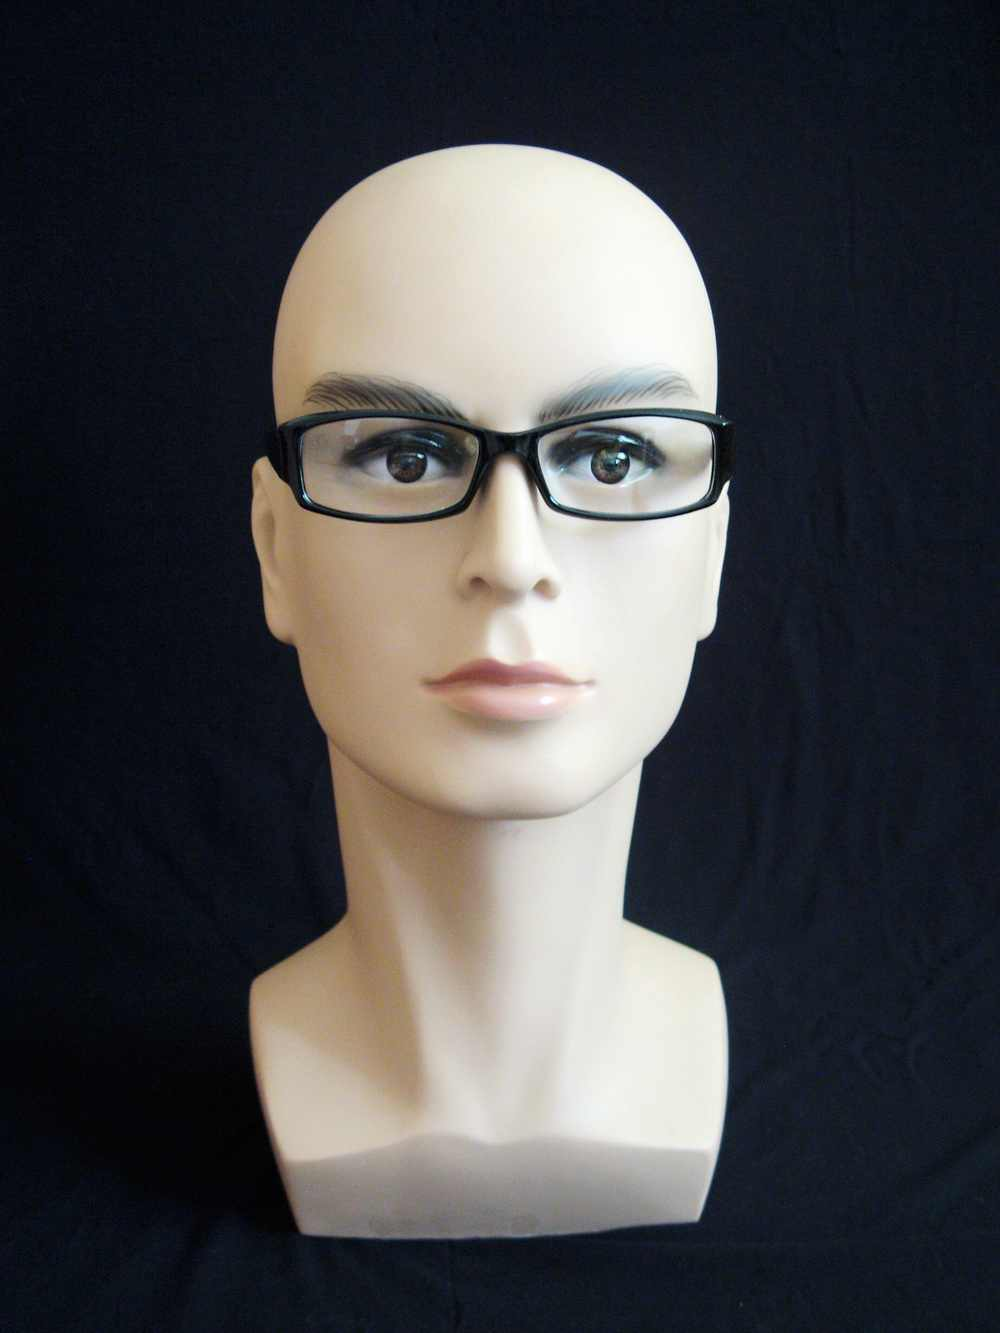 High Quality Realistic Plastic Male Mannequin Dummy Head For Hat Wig Sunglass Display,Manikin Heads